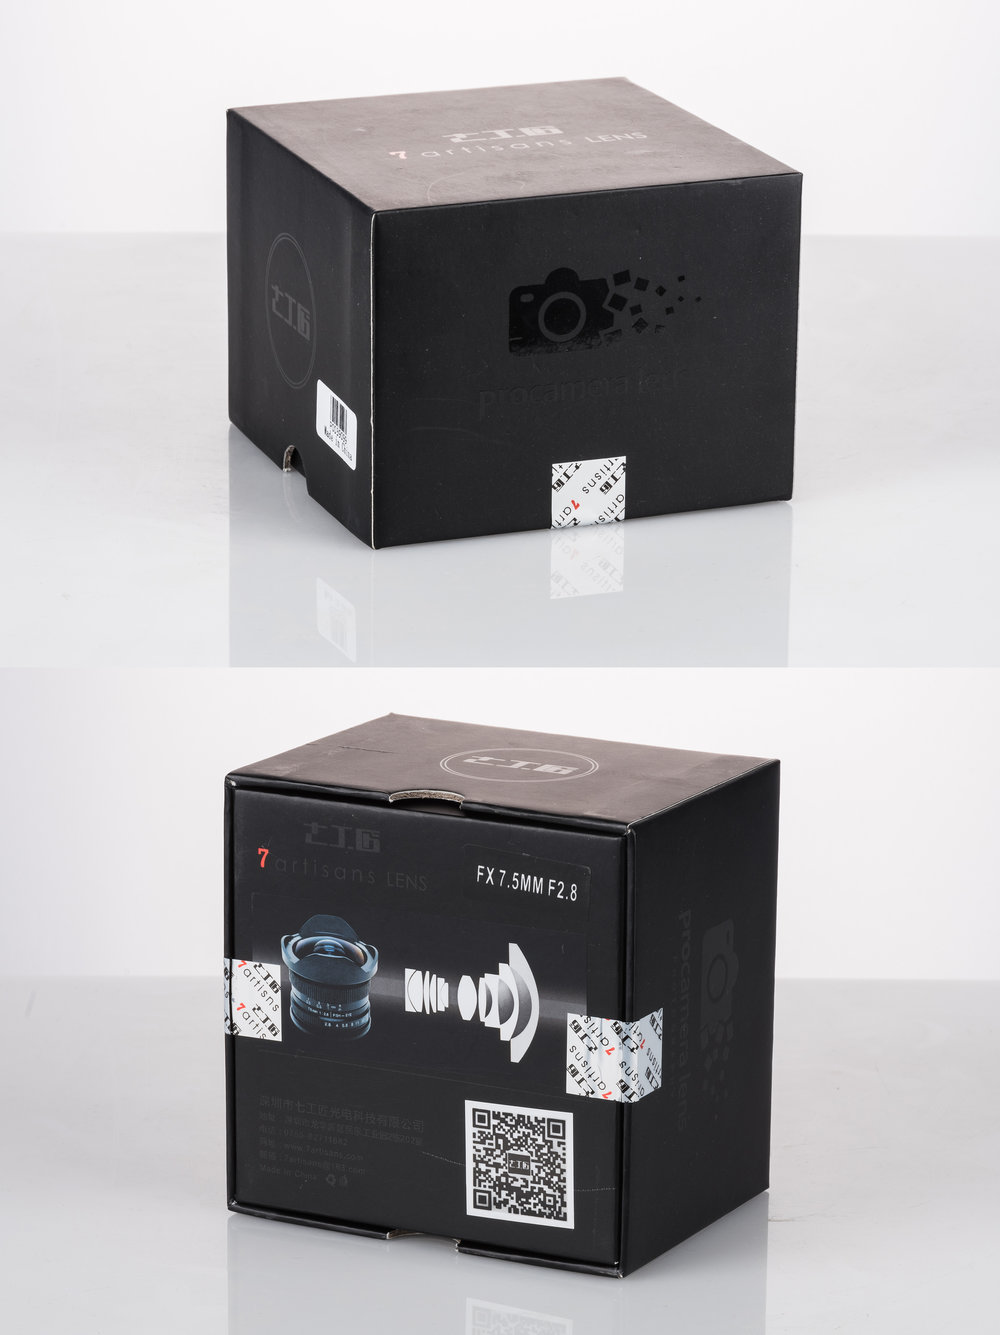 A simple square black box with minimal printing. Basic information on the bottom.